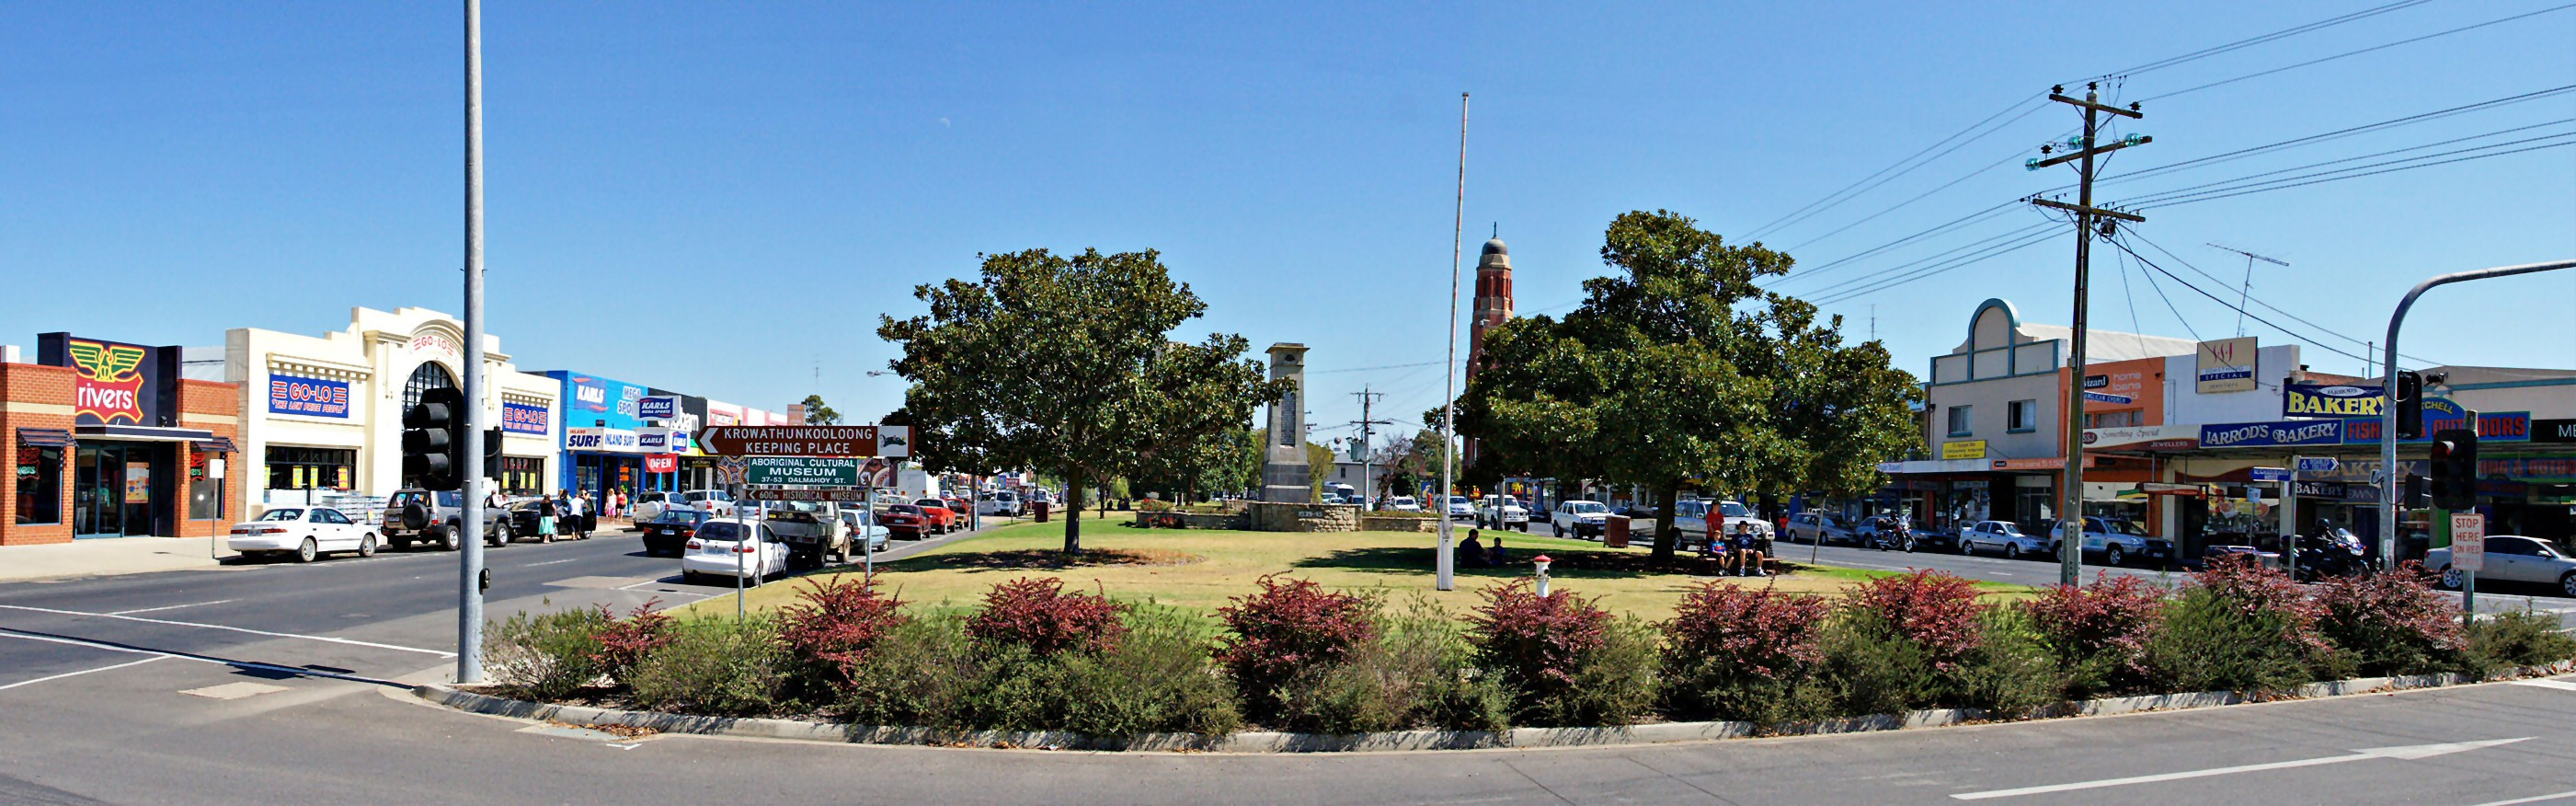 Bairnsdale Image 0